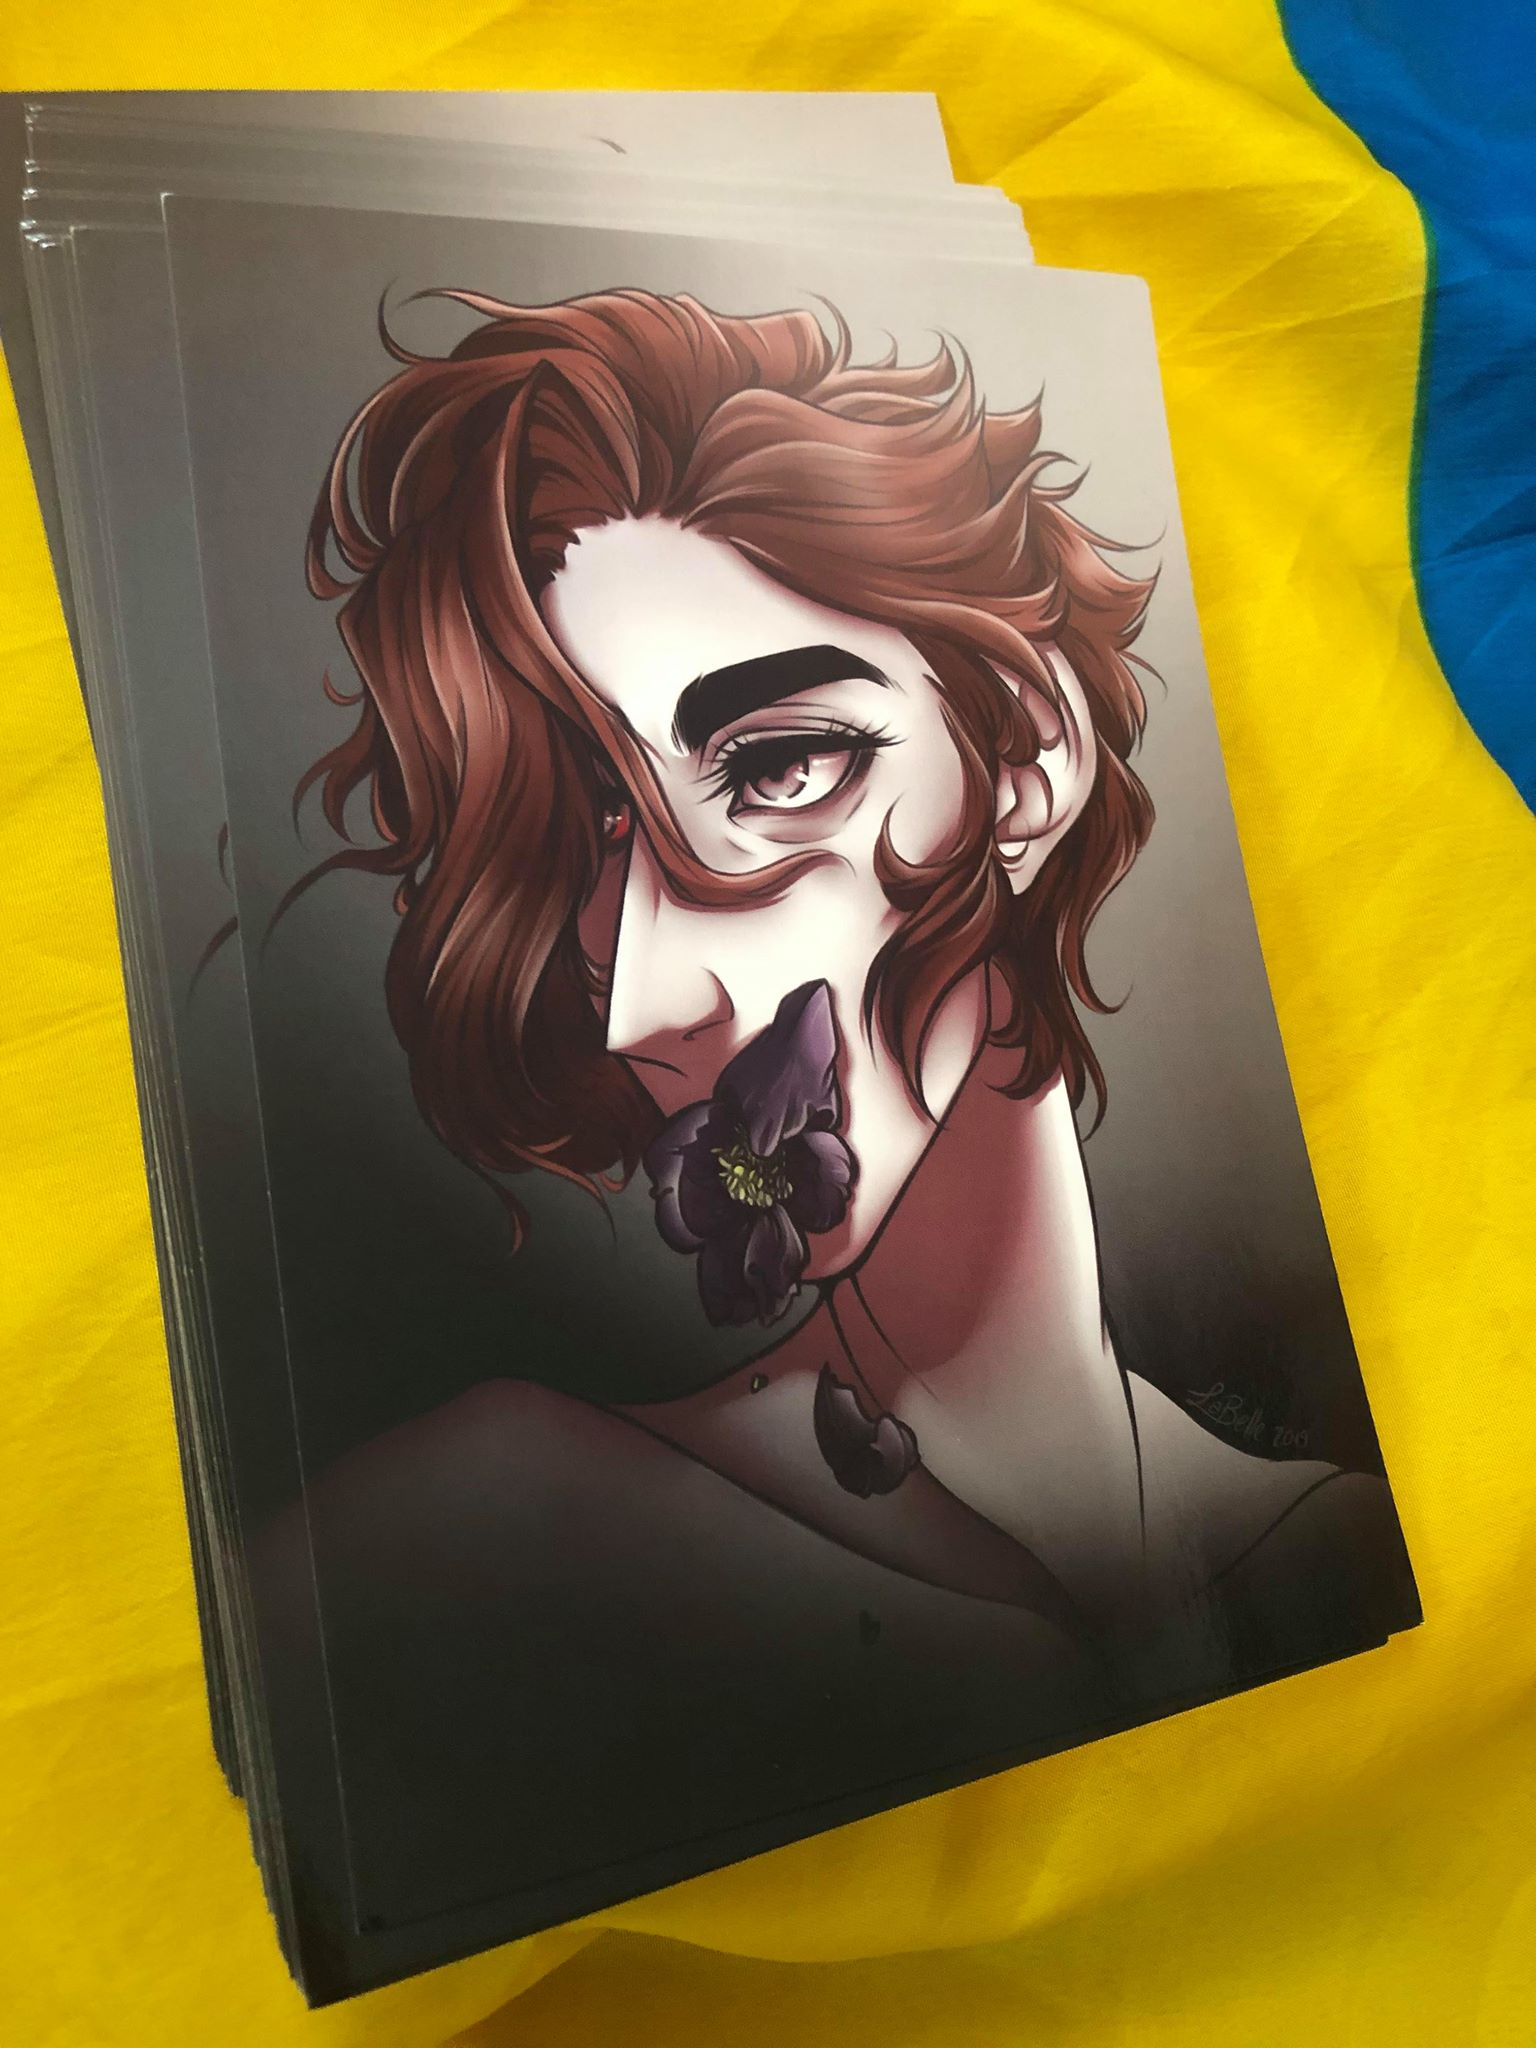 The Arcana Game: Julian + Wolfsbane sold by Anon Bunny